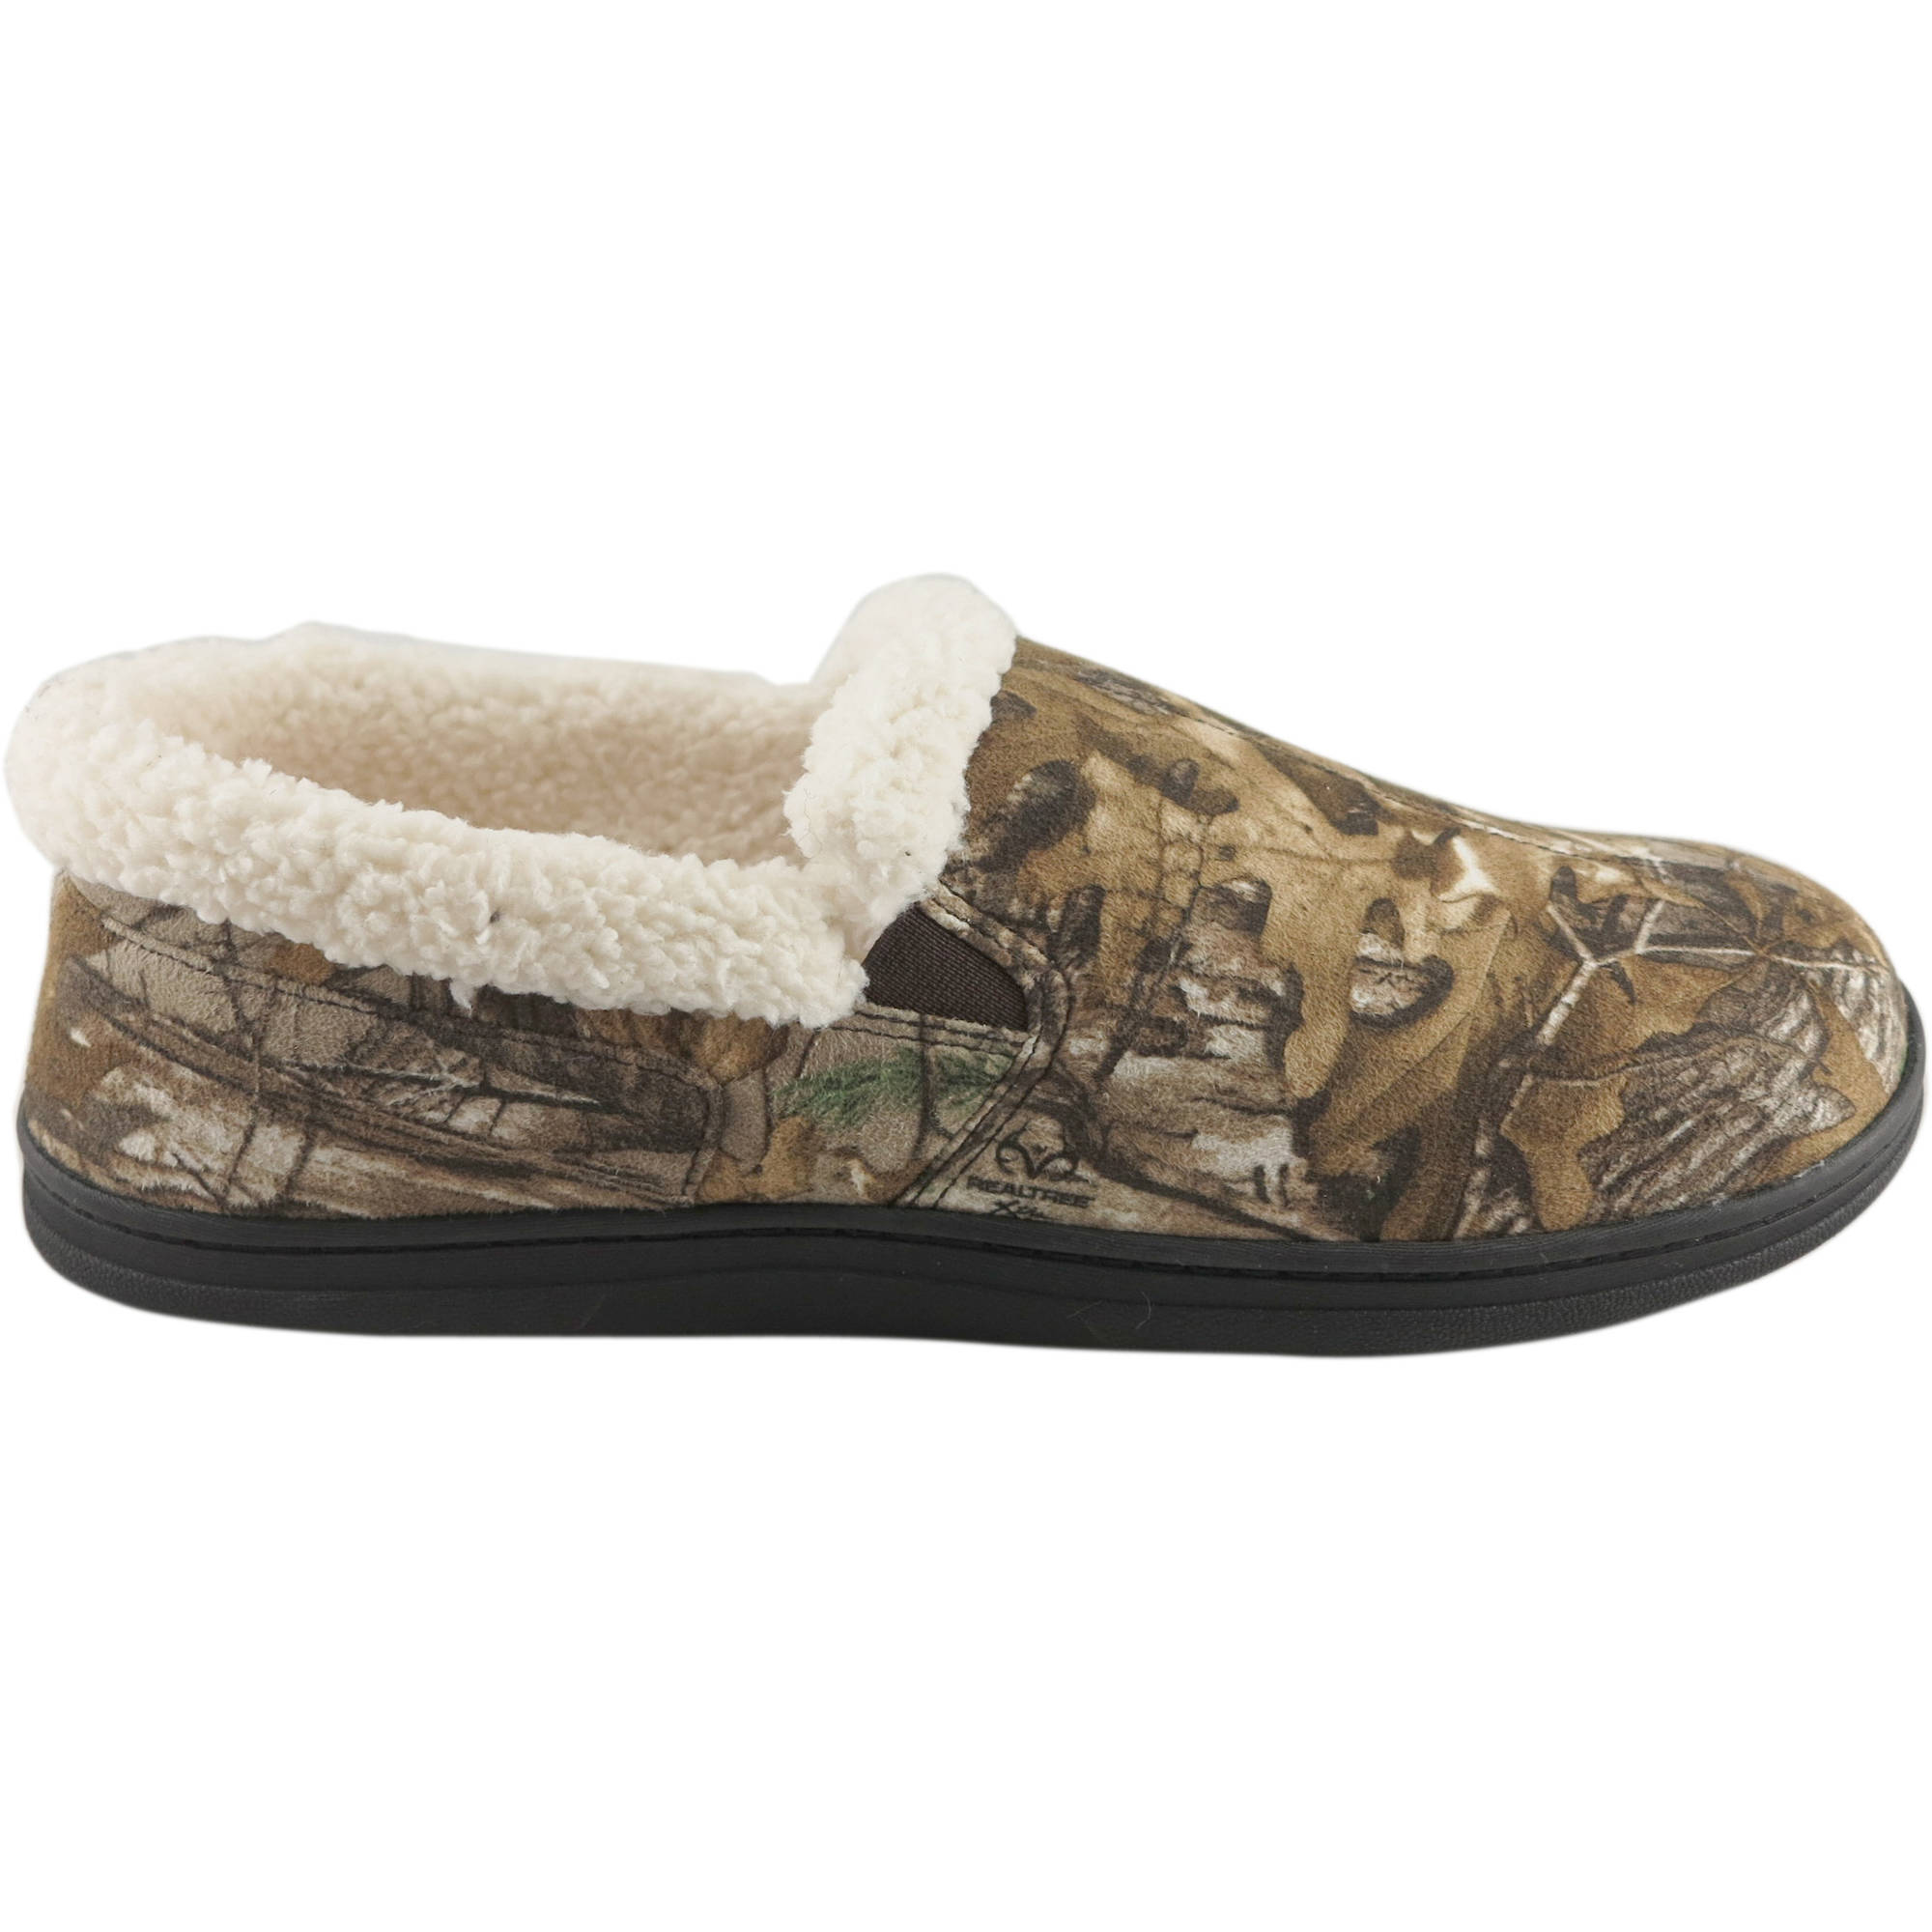 House Shoes Slippers